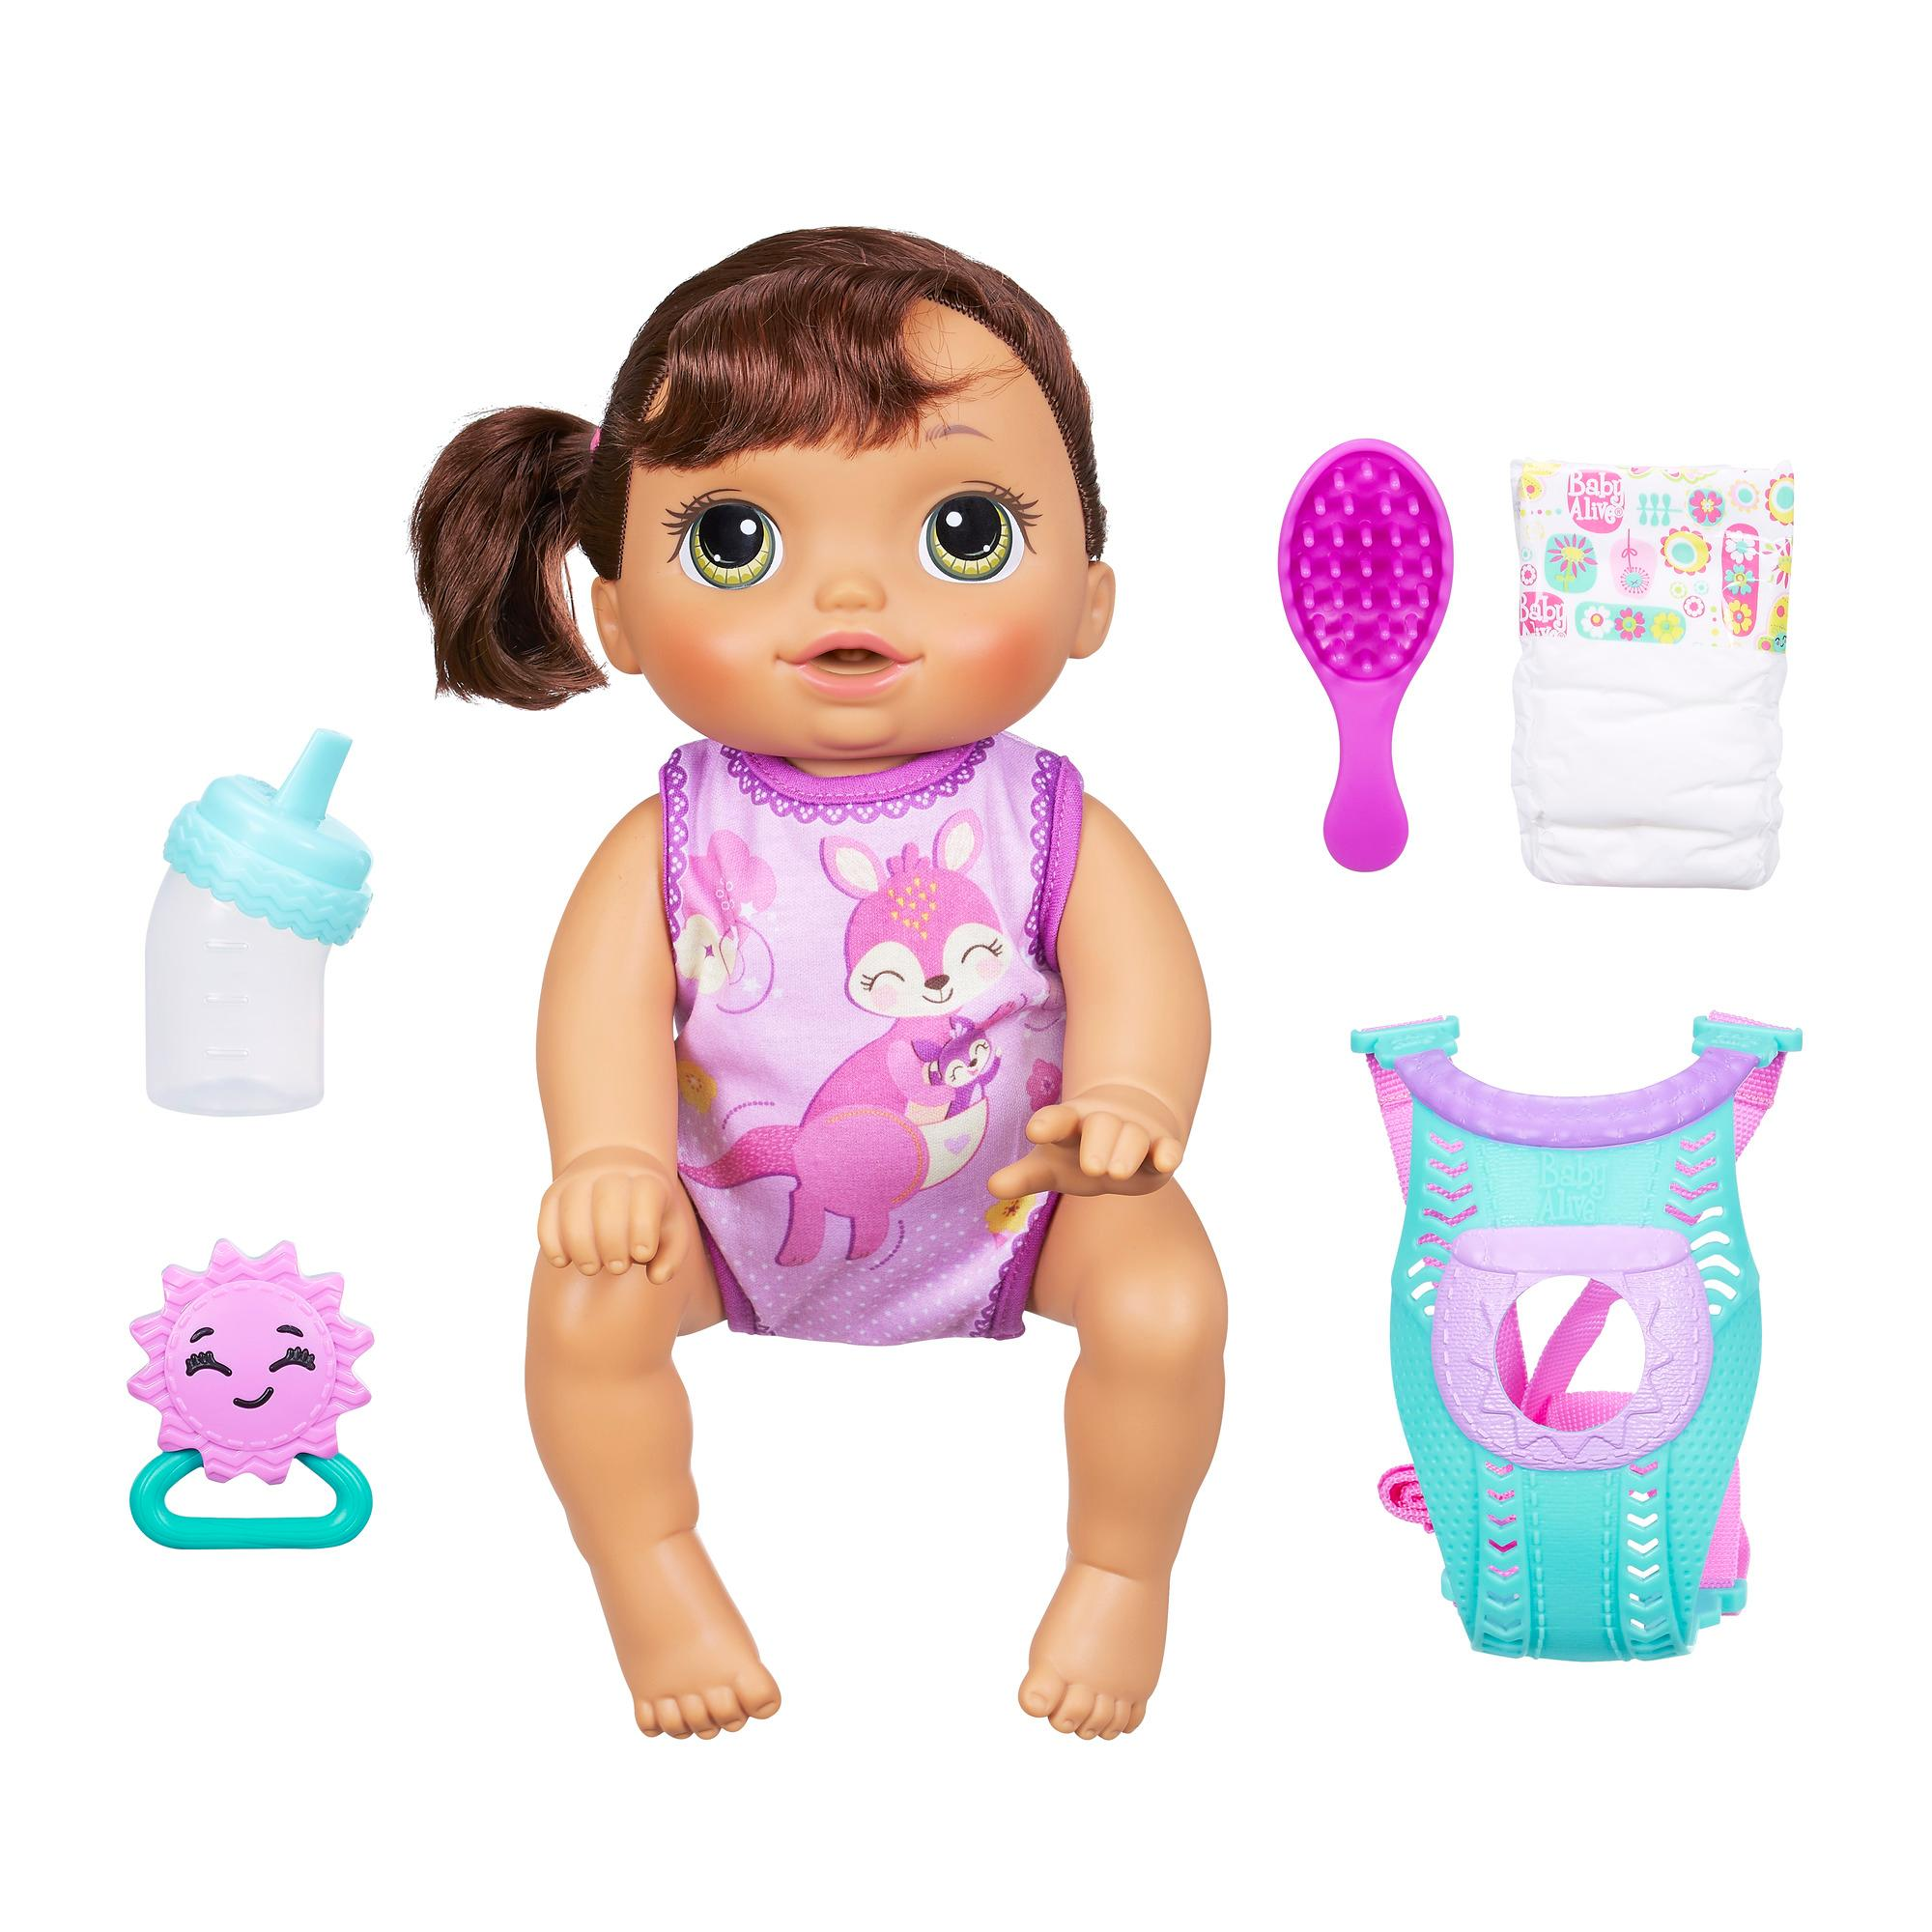 Shop for baby alive at Best Buy. Find low everyday prices and buy online for delivery or in-store pick-up.